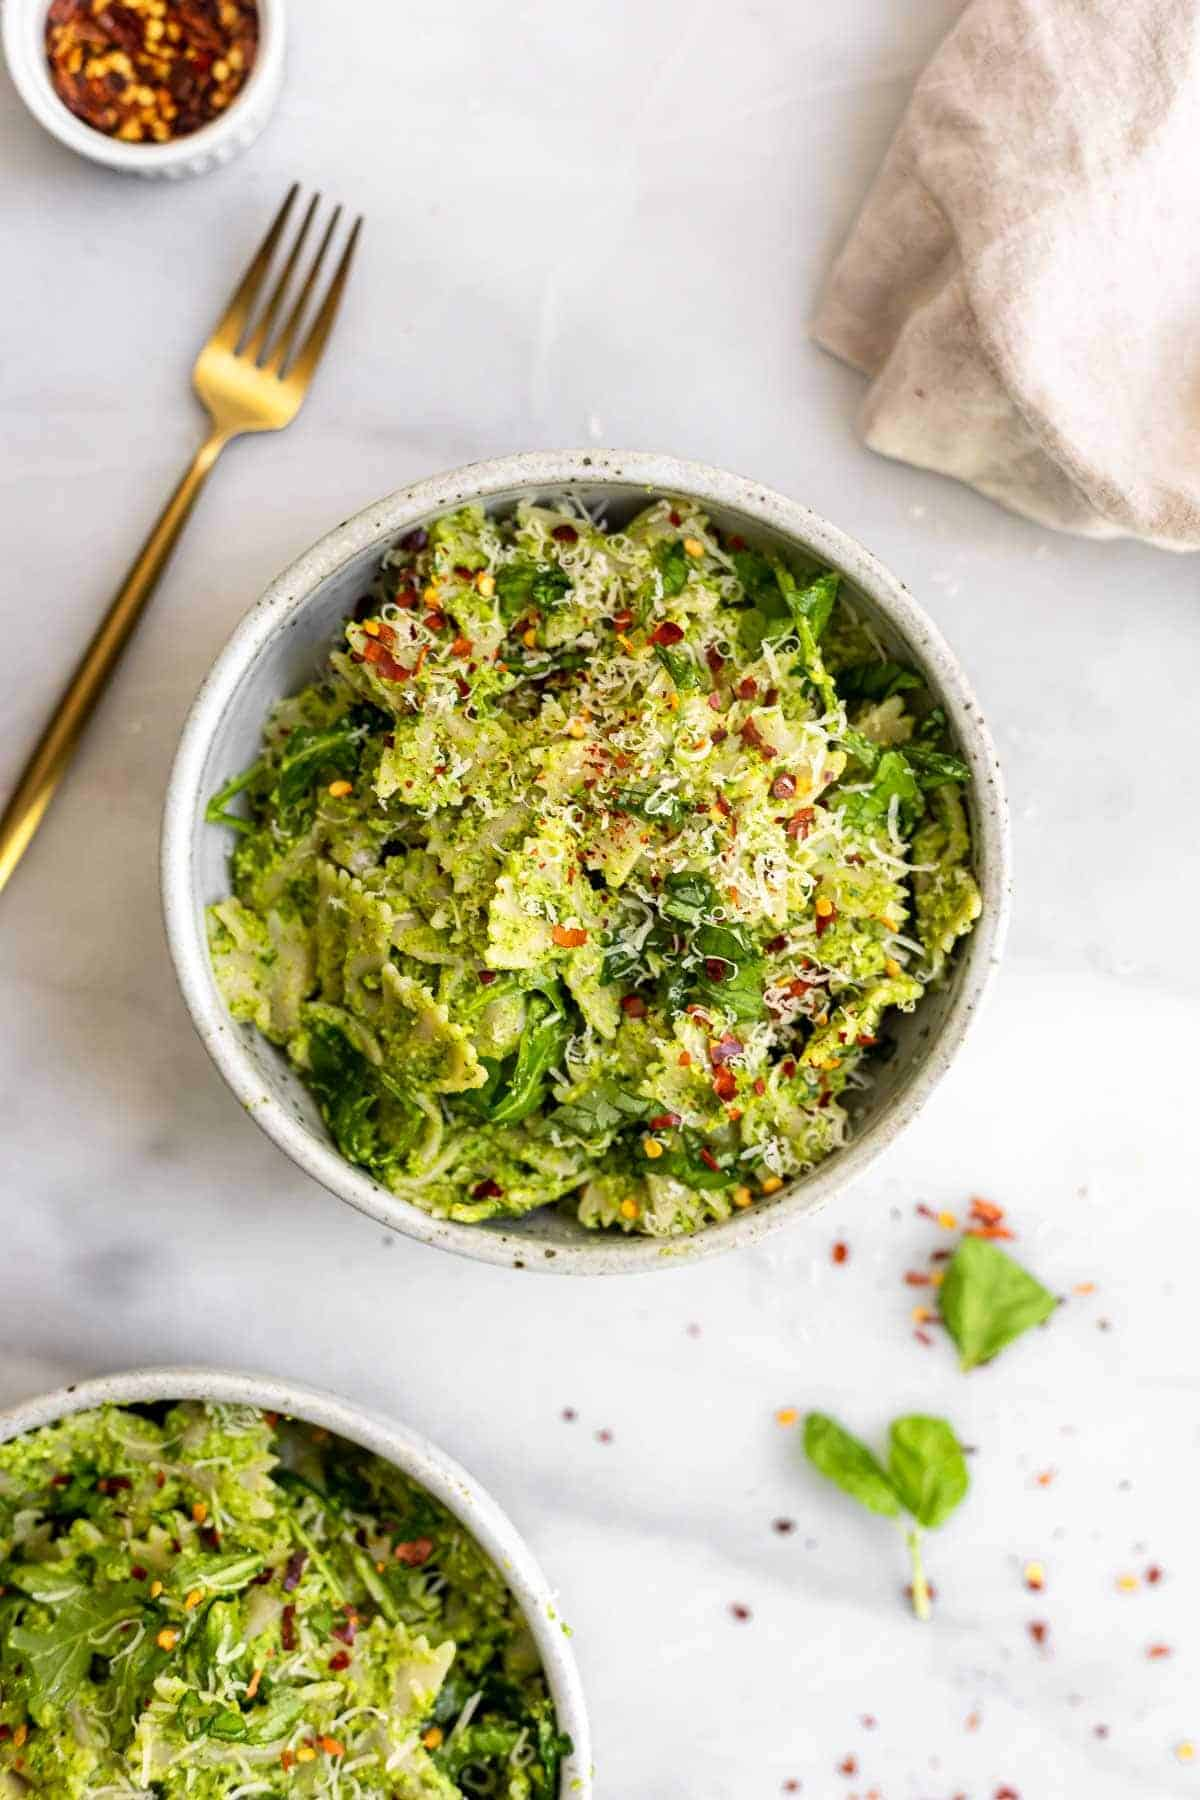 Broccoli pesto pasta with cheese on top.